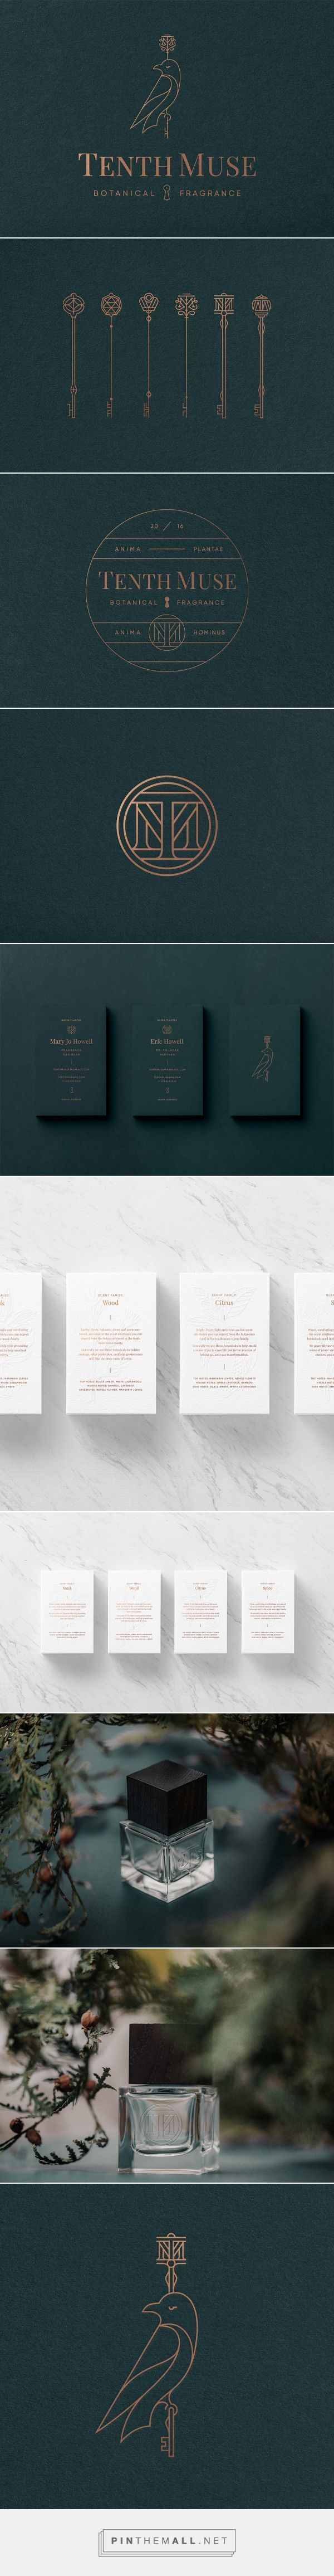 Tenth Muse Brand Identity by Studio MPLS   Inspiration Grid   Design Inspiration... - a grouped images picture - Pin Them All